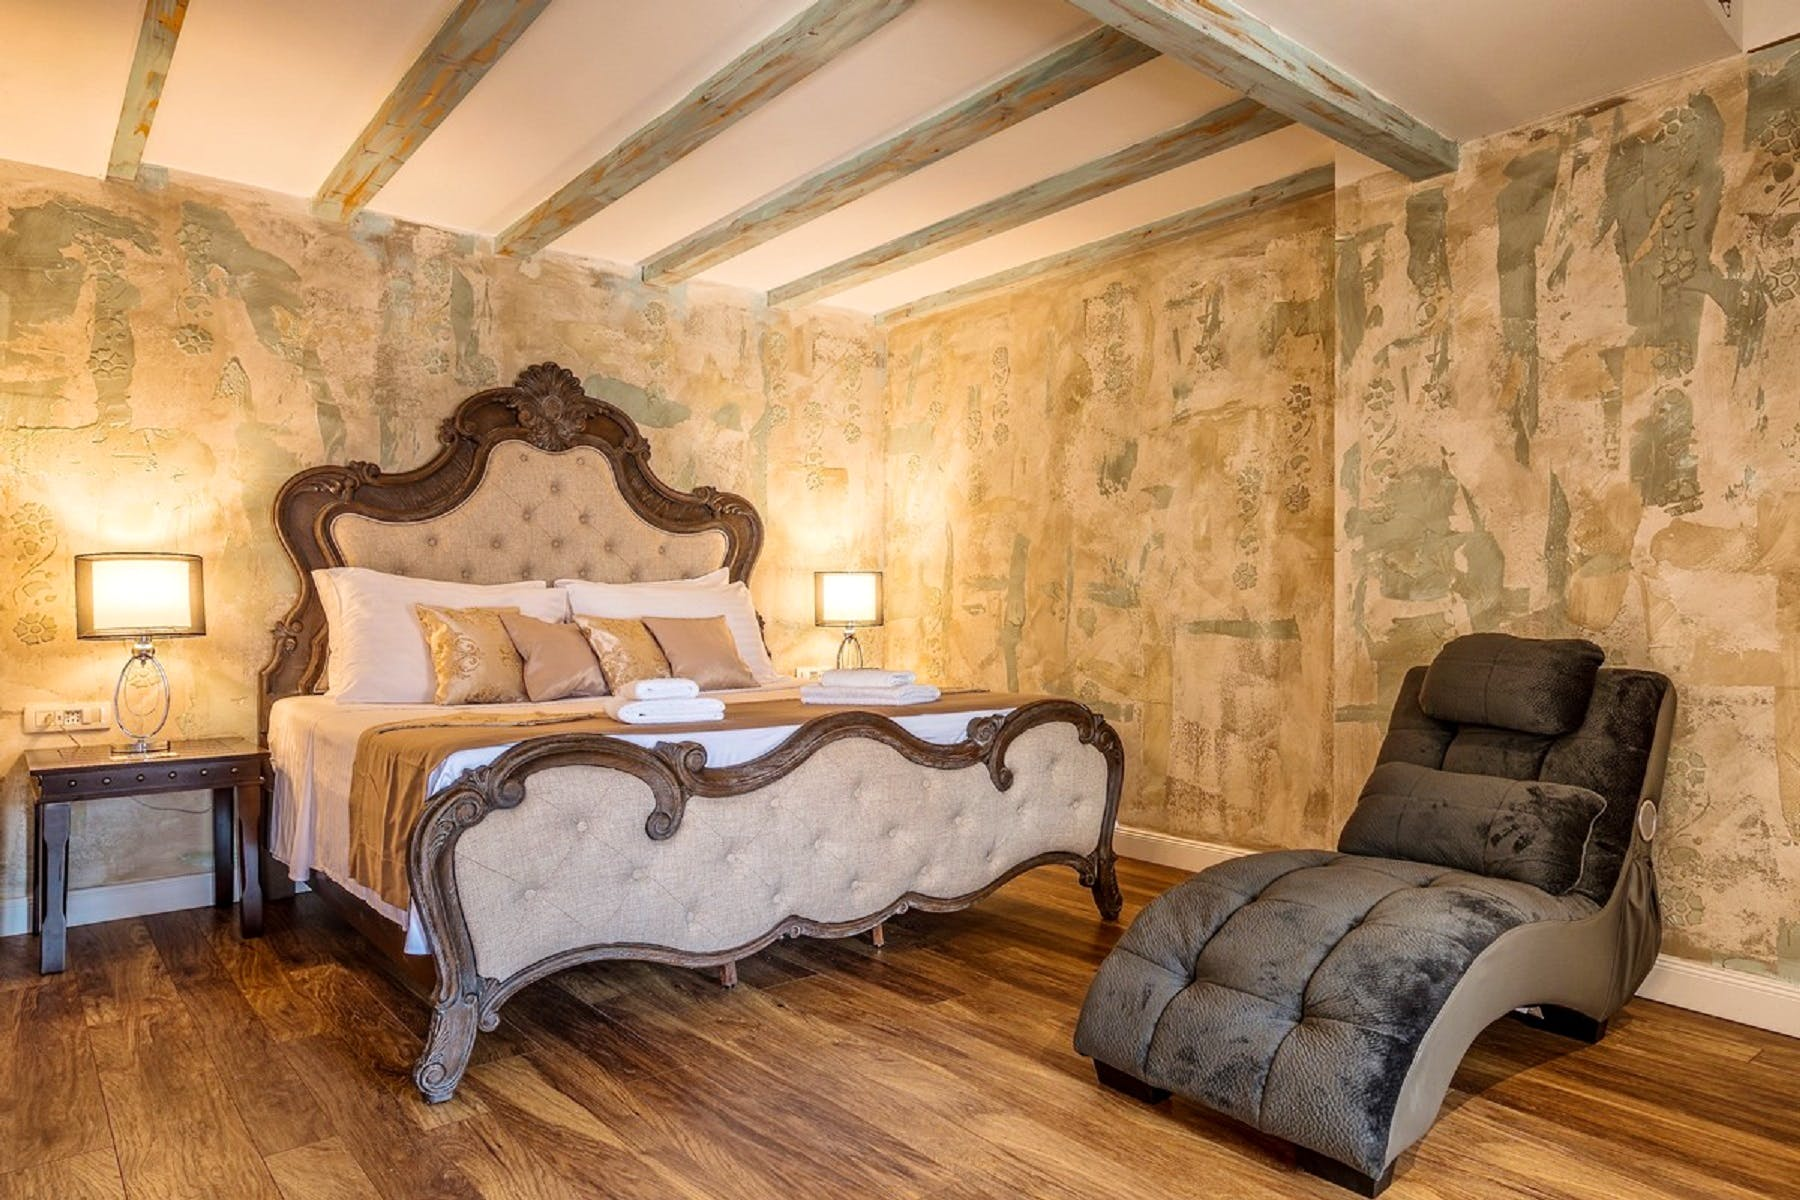 Massive double beds make the centerpiece of every room